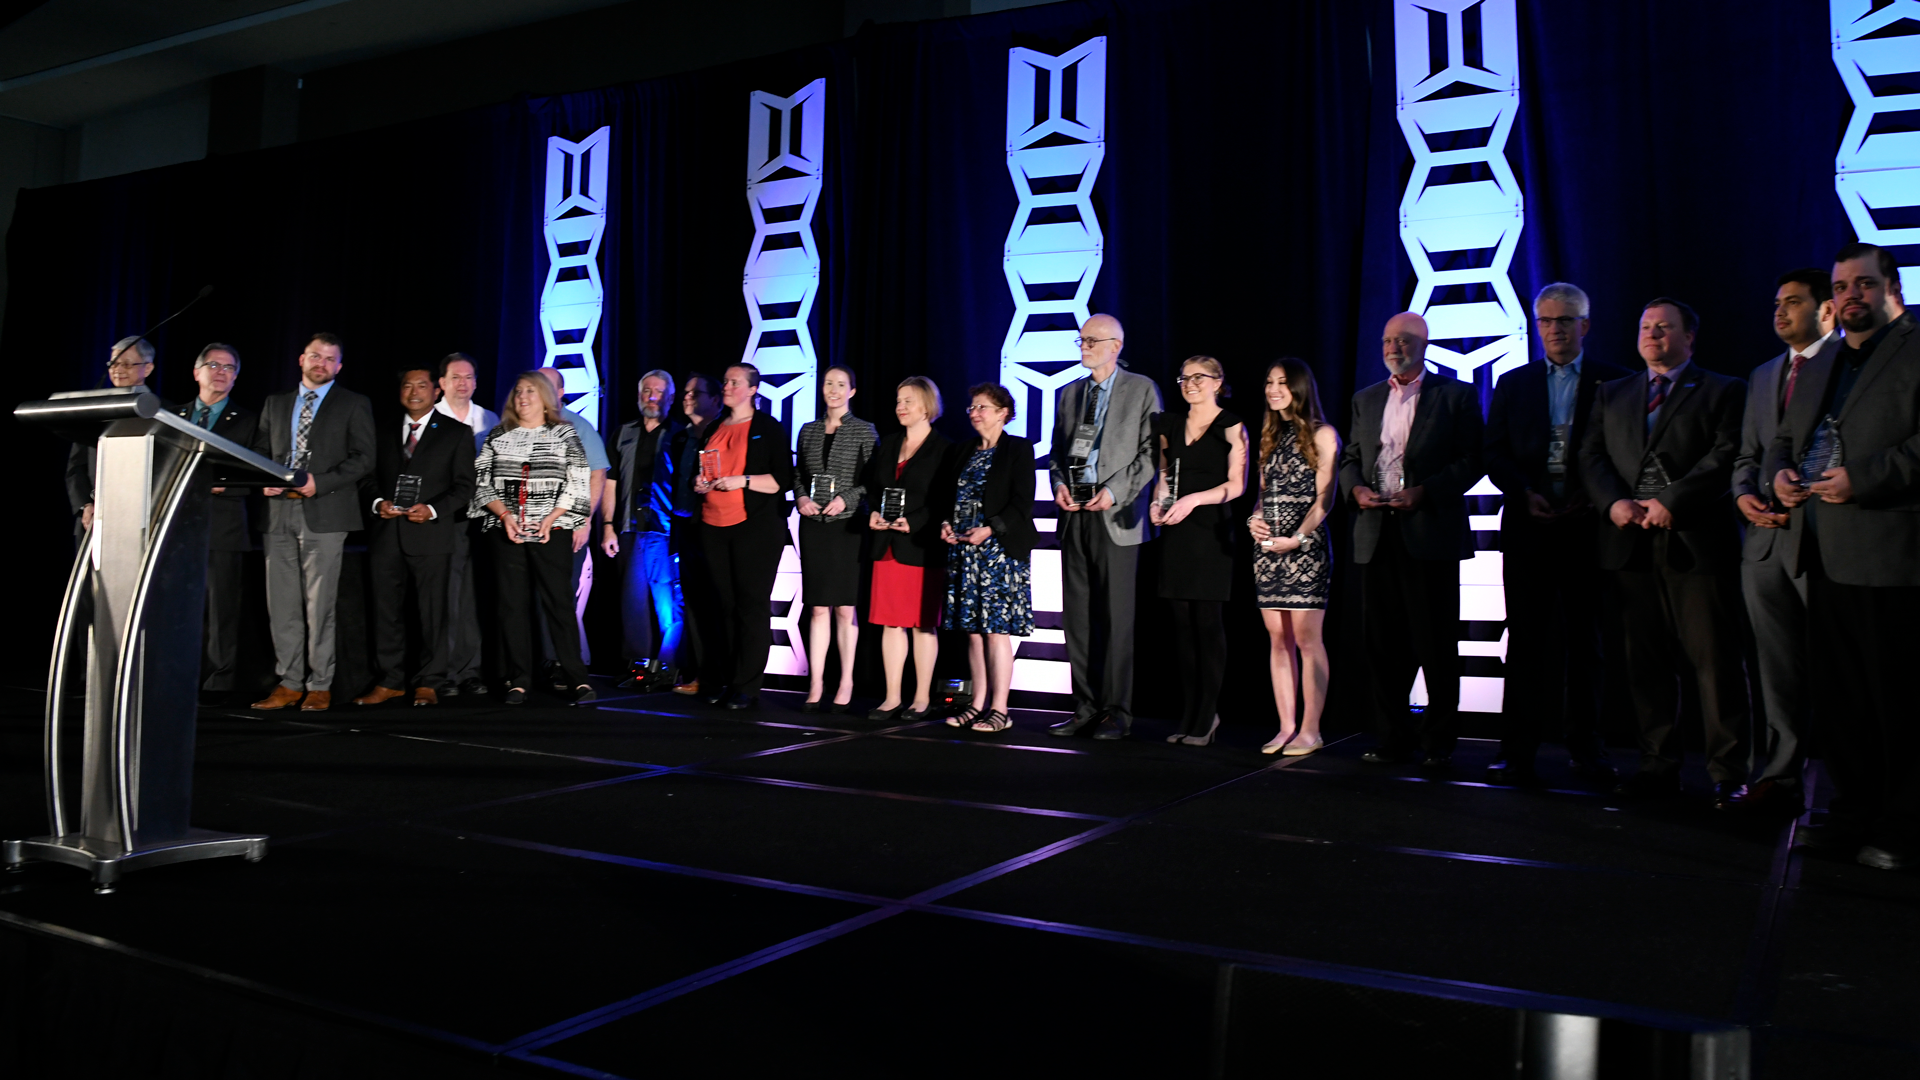 The 2018 AAMI Award winners stand on stage during the AAMI Exchange